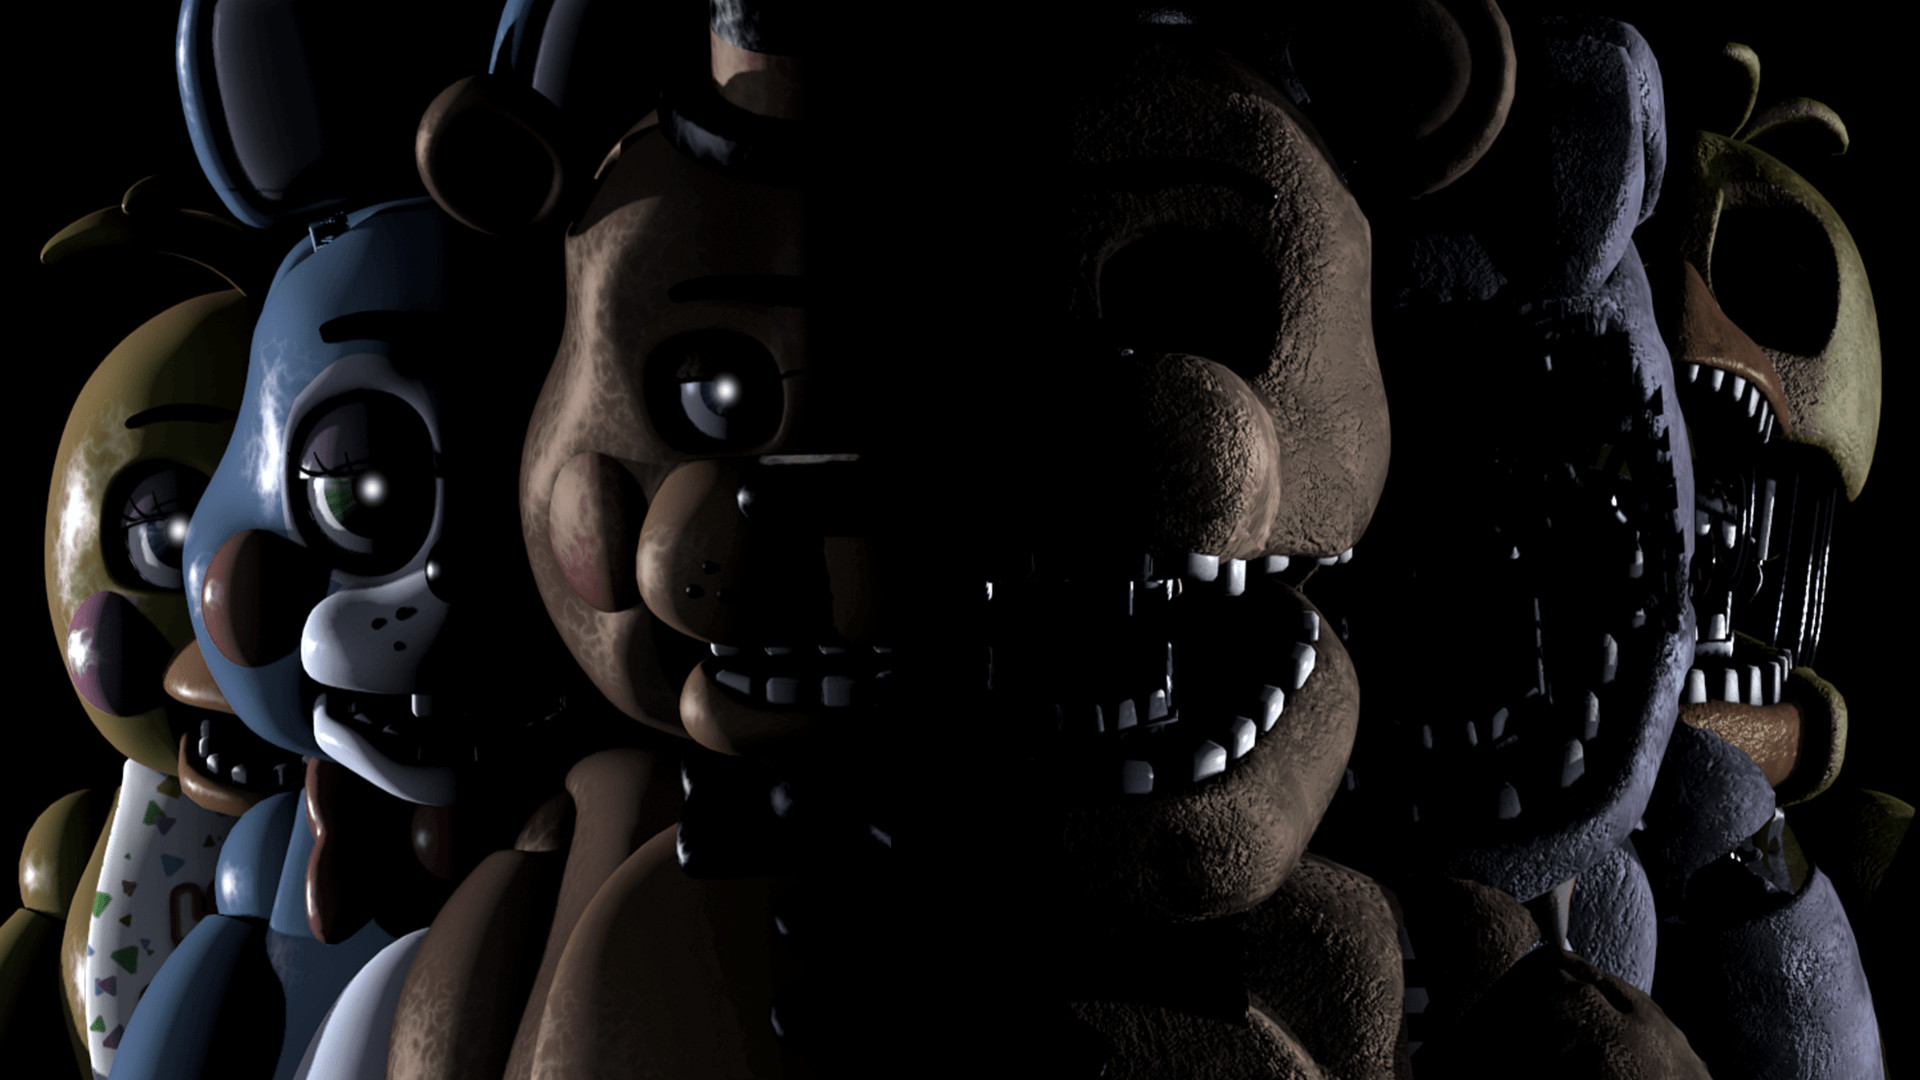 Five Nights at Freddy's Wallpapers – Album on Imgur